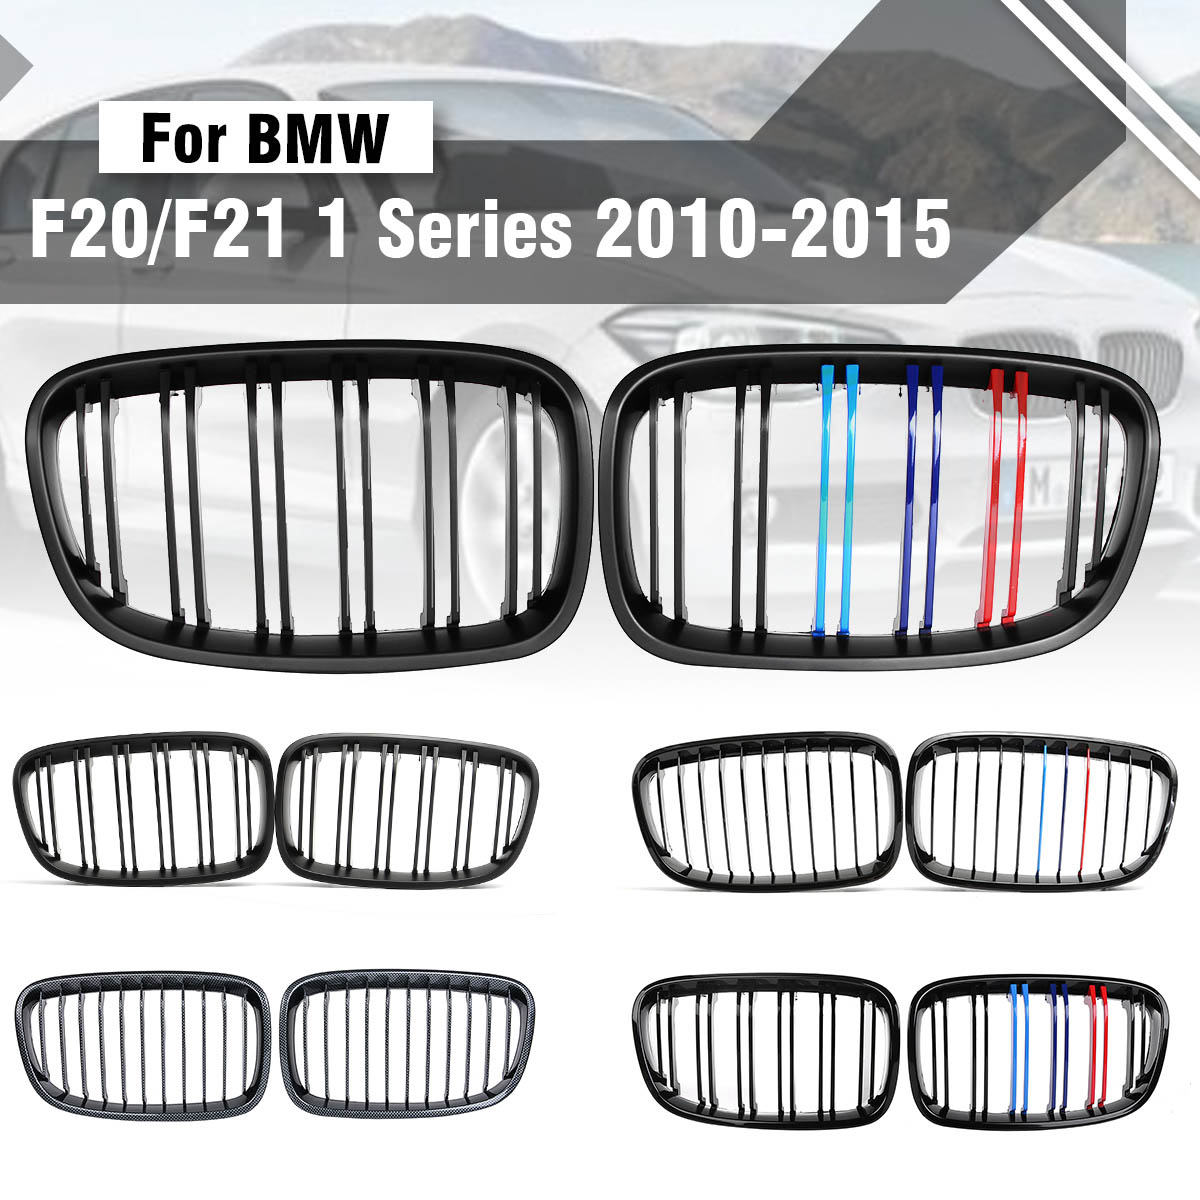 for BMW F20 F21 1 Series 2012 2013 2014 2015 Pair ABS Replacement Matt Gloss Black M Front Kidney Grille Grill Double Line Slat gloss black front dual line grille grill for bmw f20 f21 1 series 118i 2010 2011 2012 2013 2014